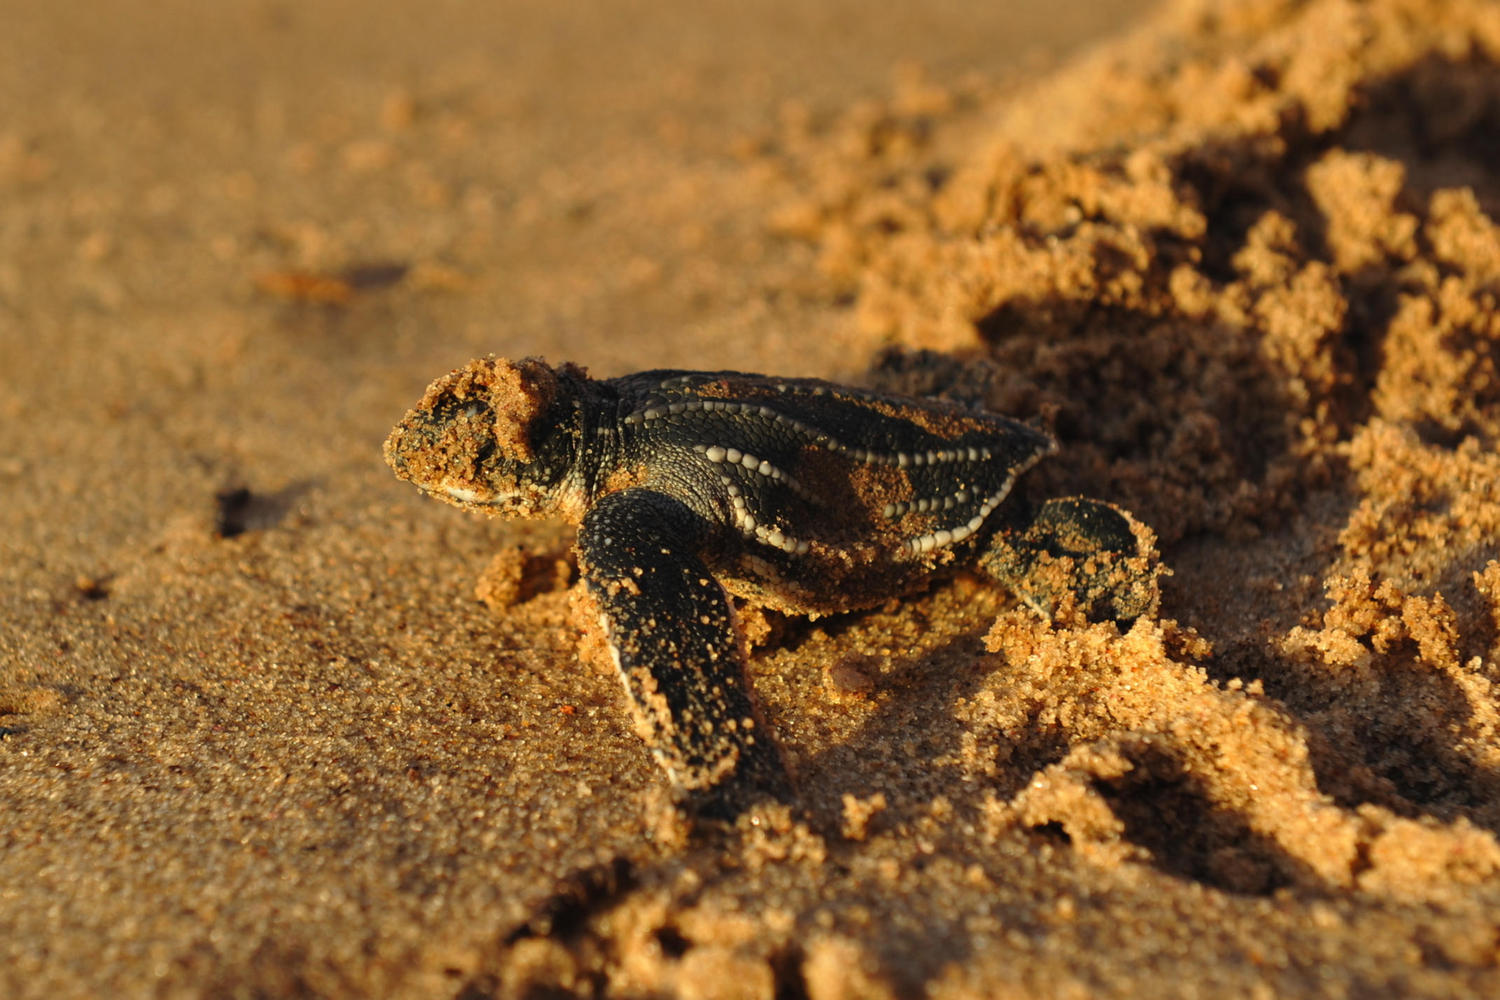 Olive Ridley turtle emerging from the sands to head for the Pacific